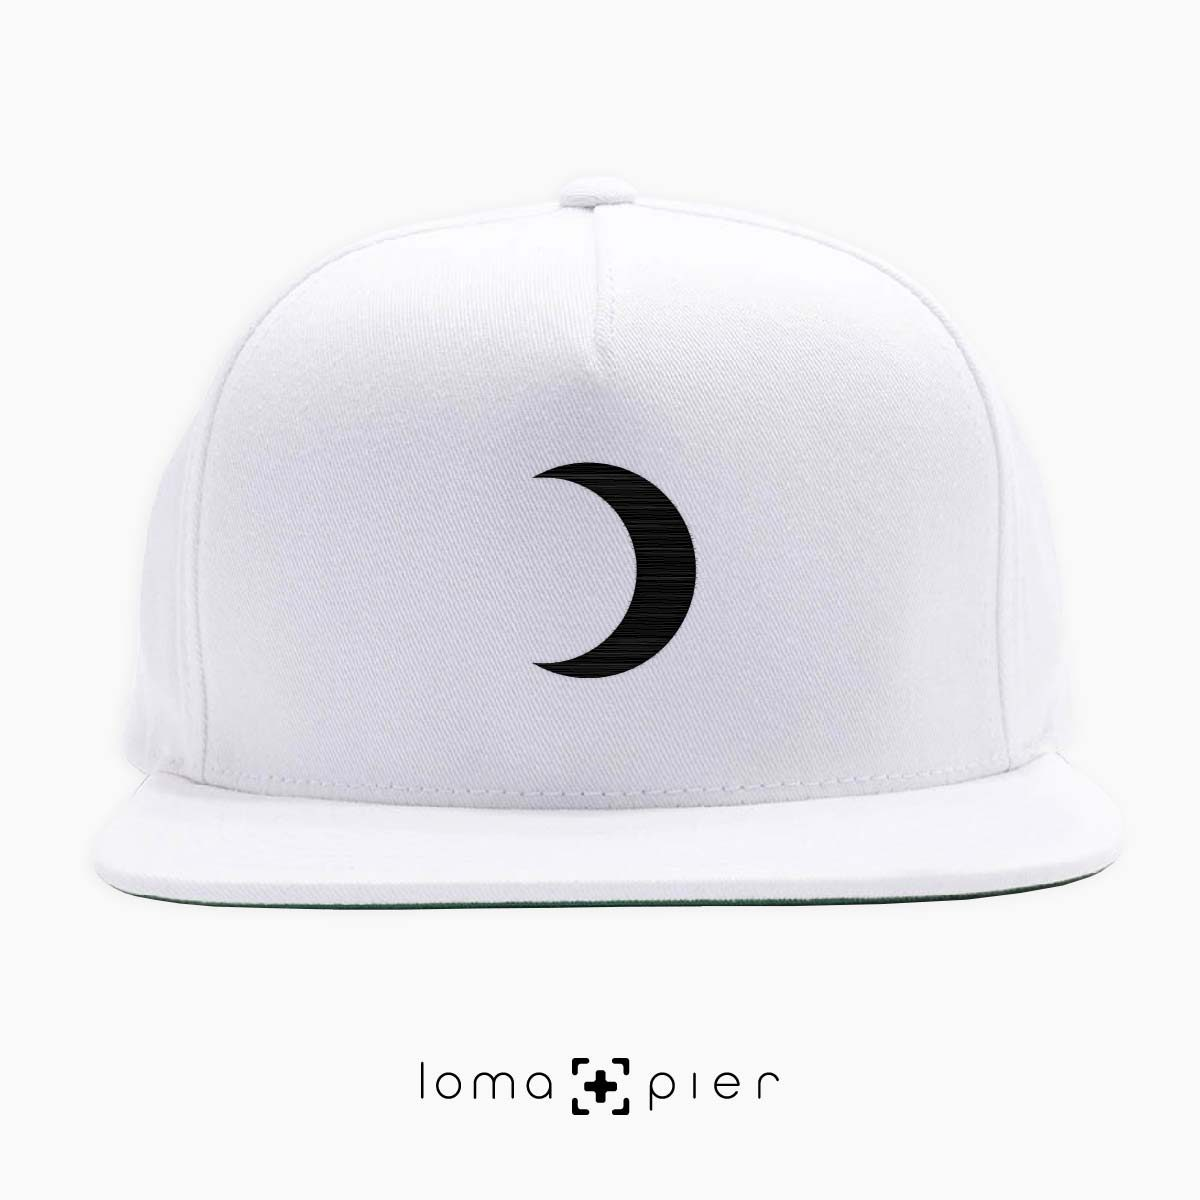 MOON icon embroidered on a white classic snapback hat by loma+pier hat store